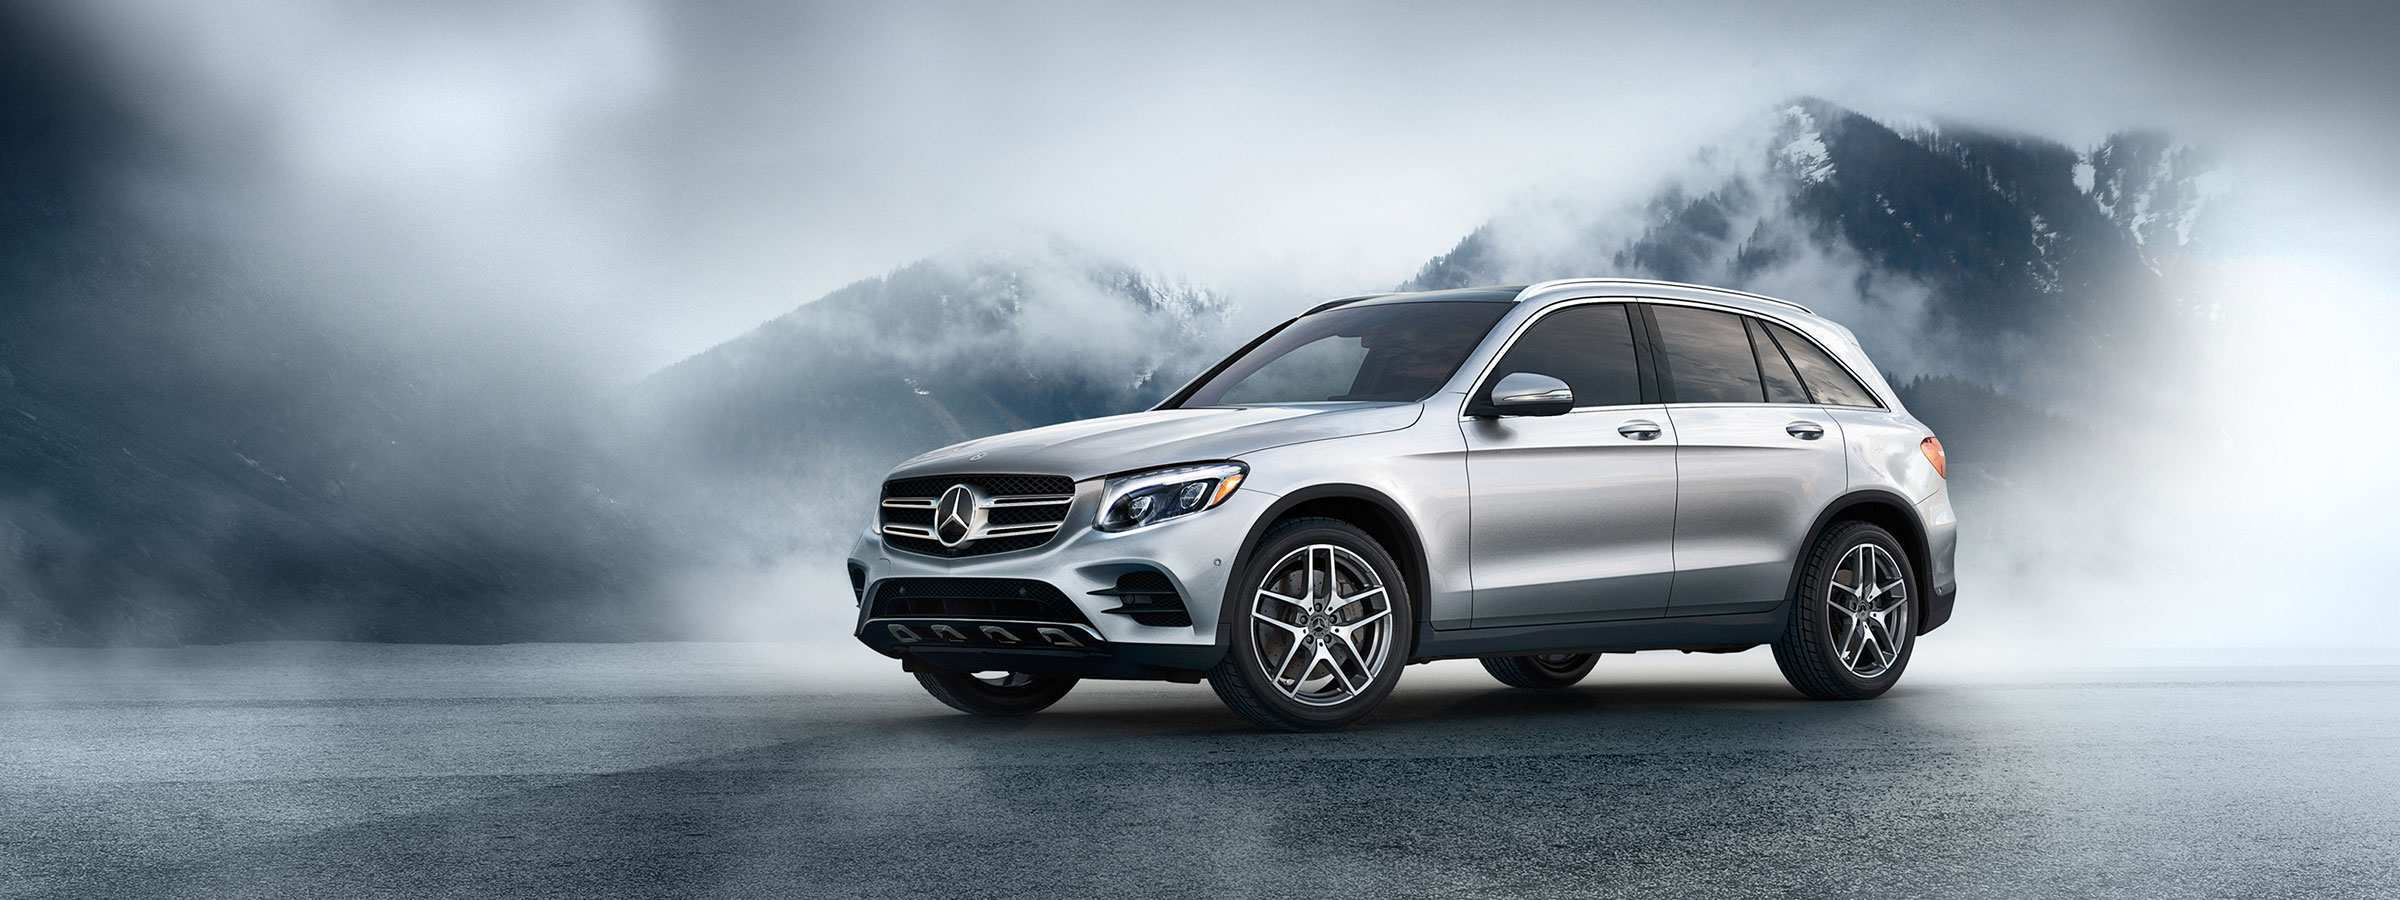 28 A 2019 Mercedes Glc Picture